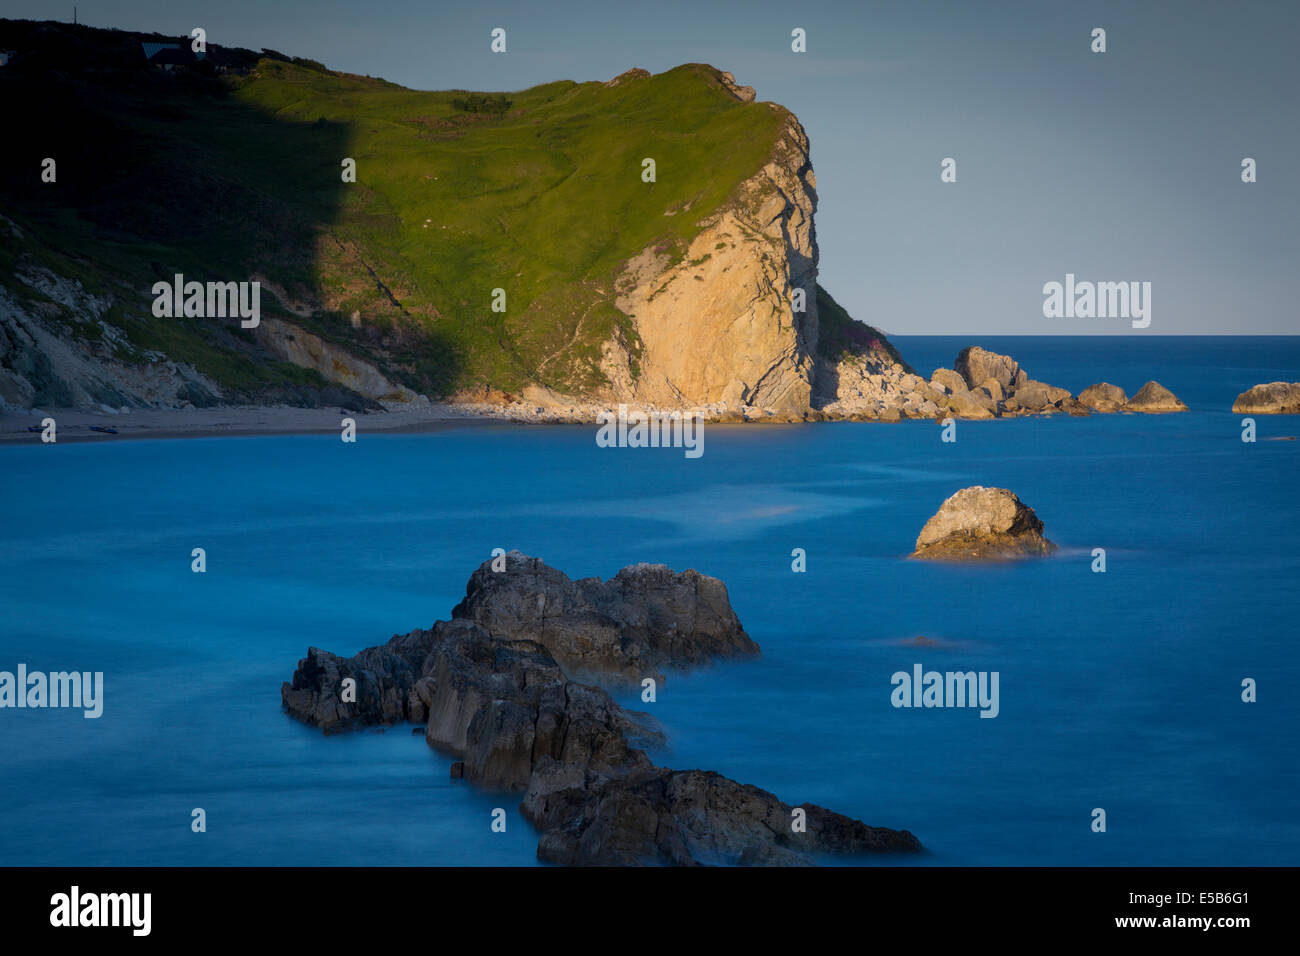 Man O' War Bay near Durdle Door, Jurassic Coast, Dorset, England - Stock Image